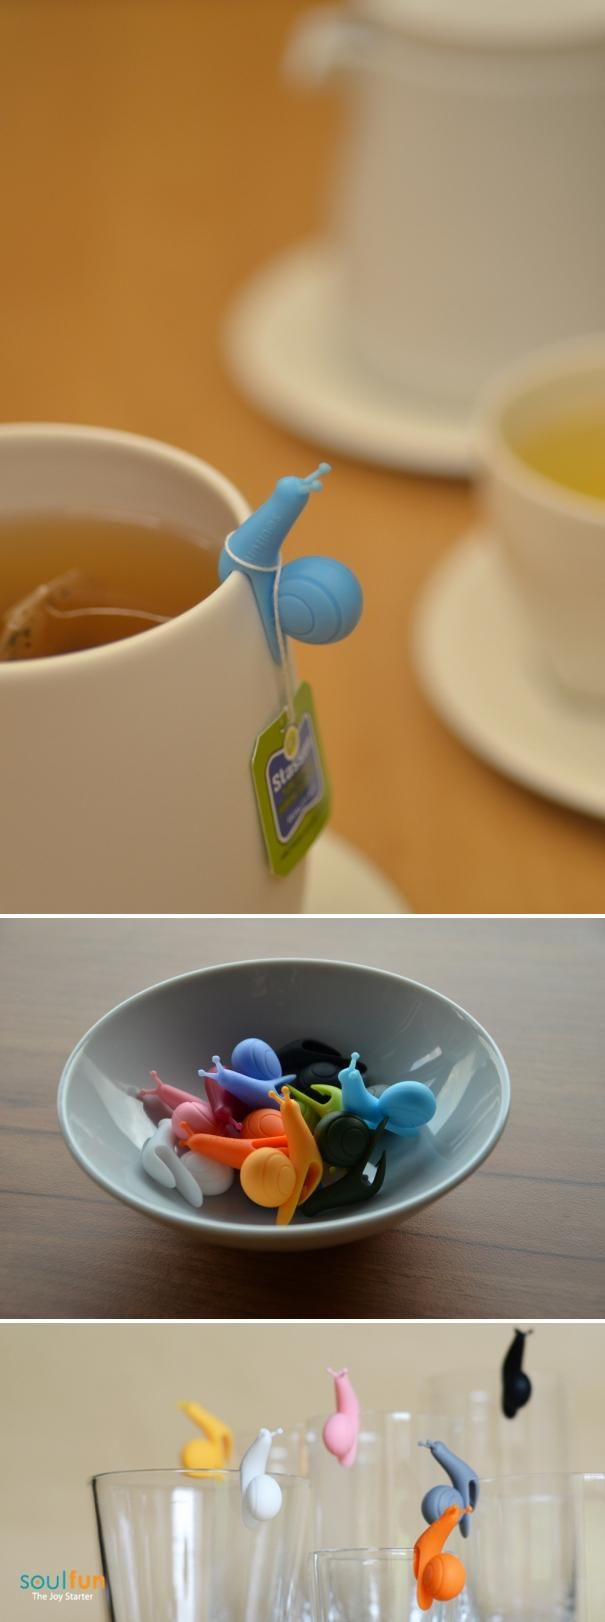 Snail tea bag holders. I don't drink tea but i might just get one of these cause they're so dang cute :)